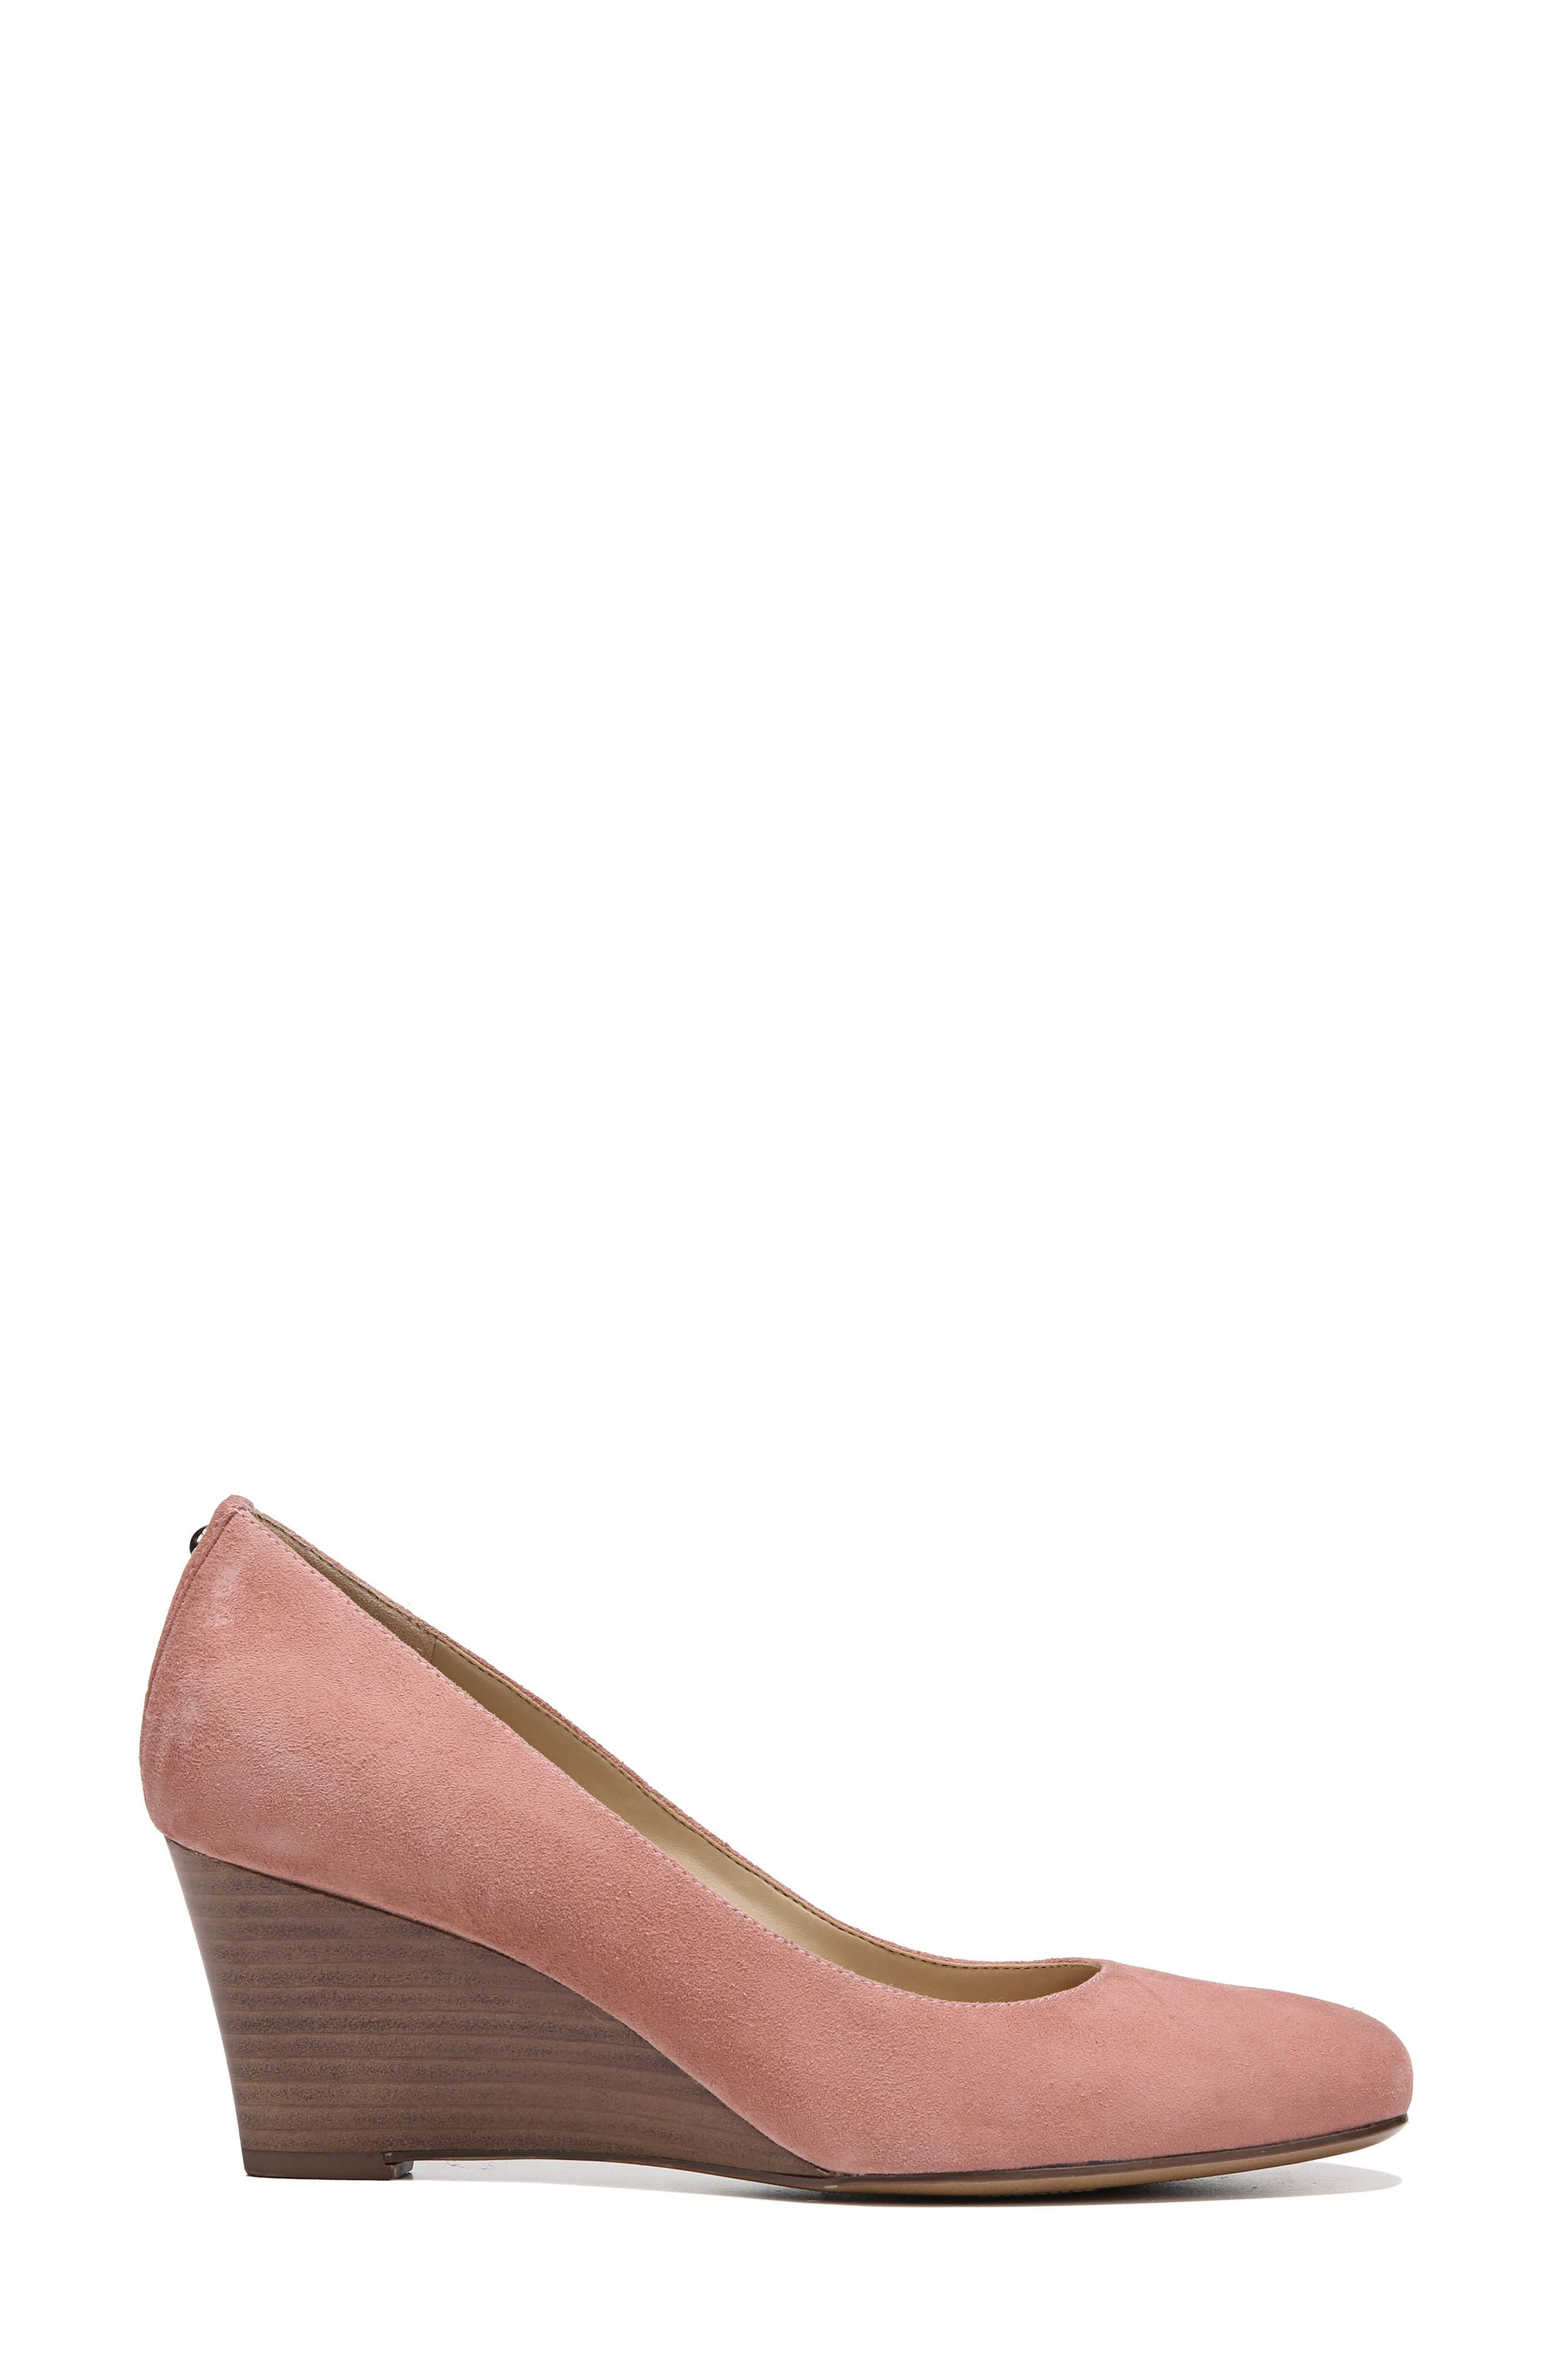 Emily Wedge Pump,                             Alternate thumbnail 3, color,                             Peony Pink Suede